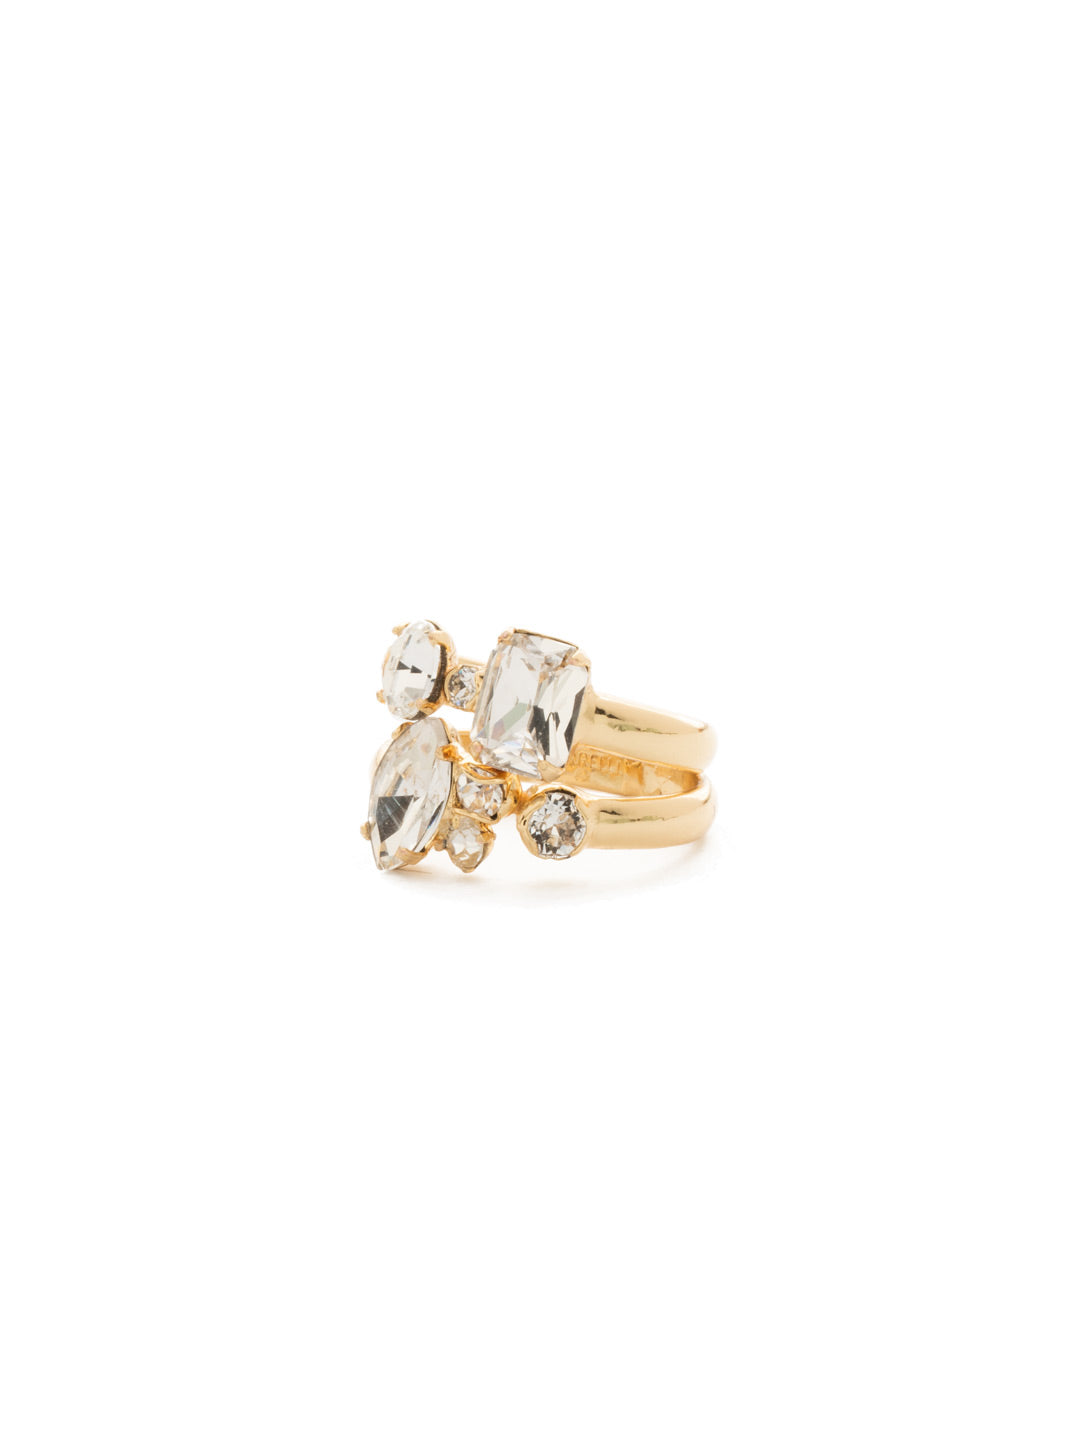 Double Up Stackable Ring Set - RDK50BGCRY